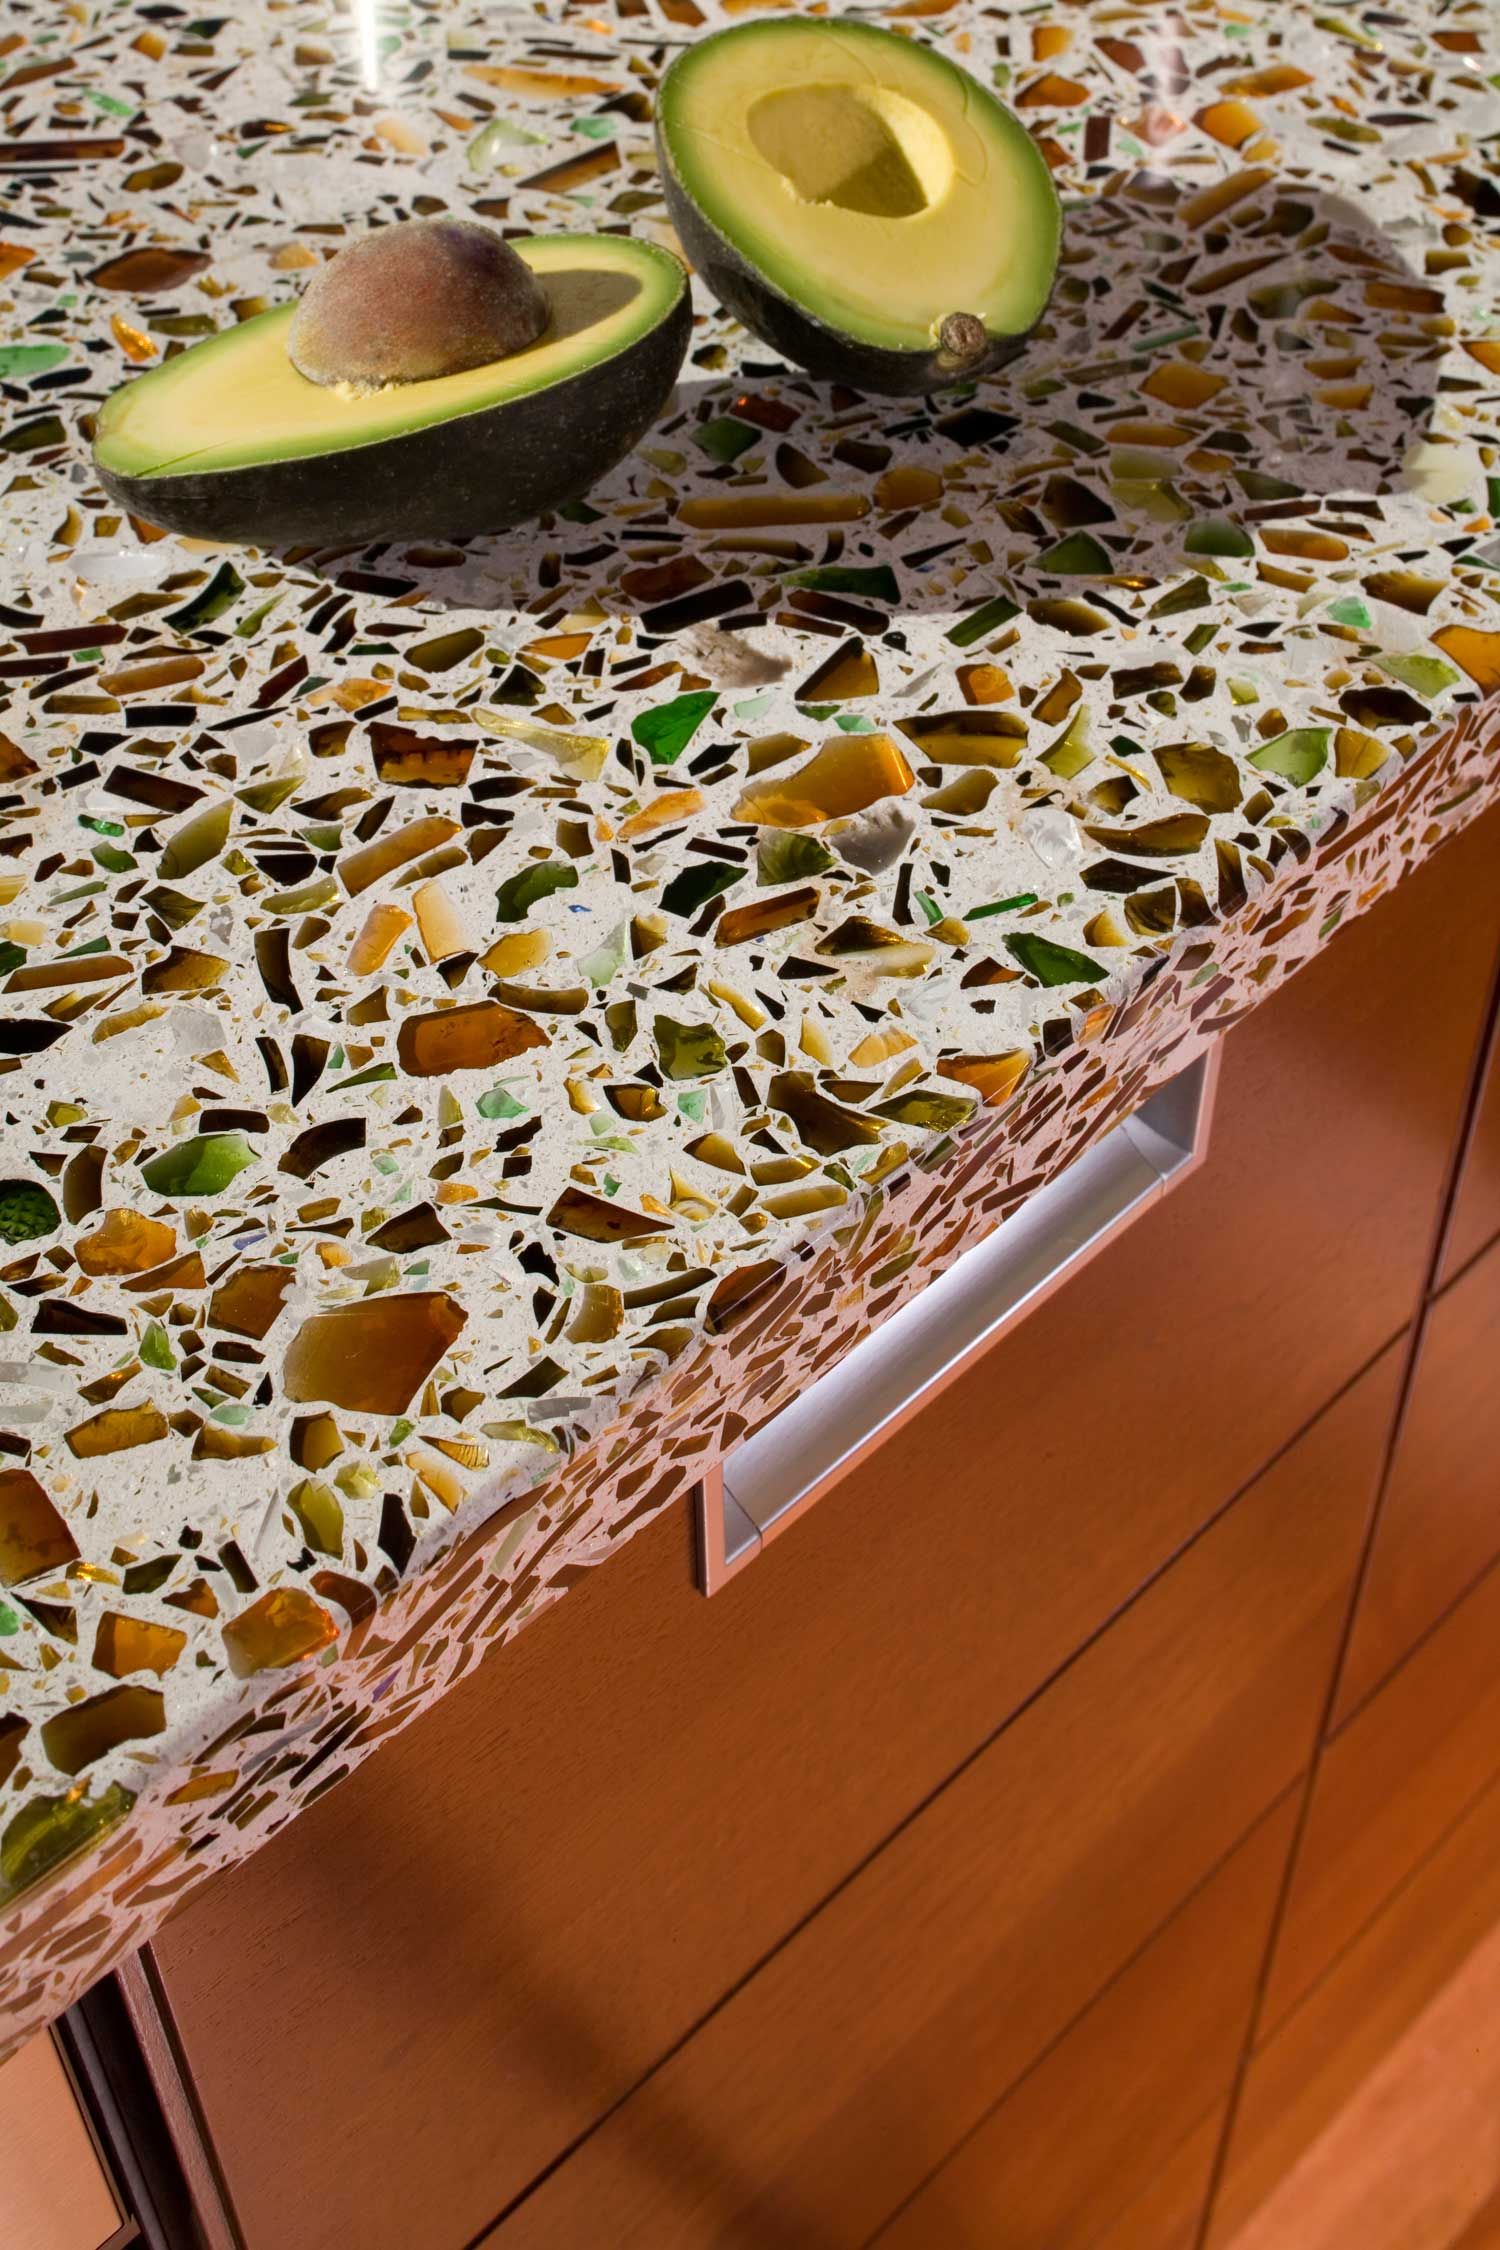 Recycled Glass Kitchen Countertops Wall Cabinets Terrazzo Houston